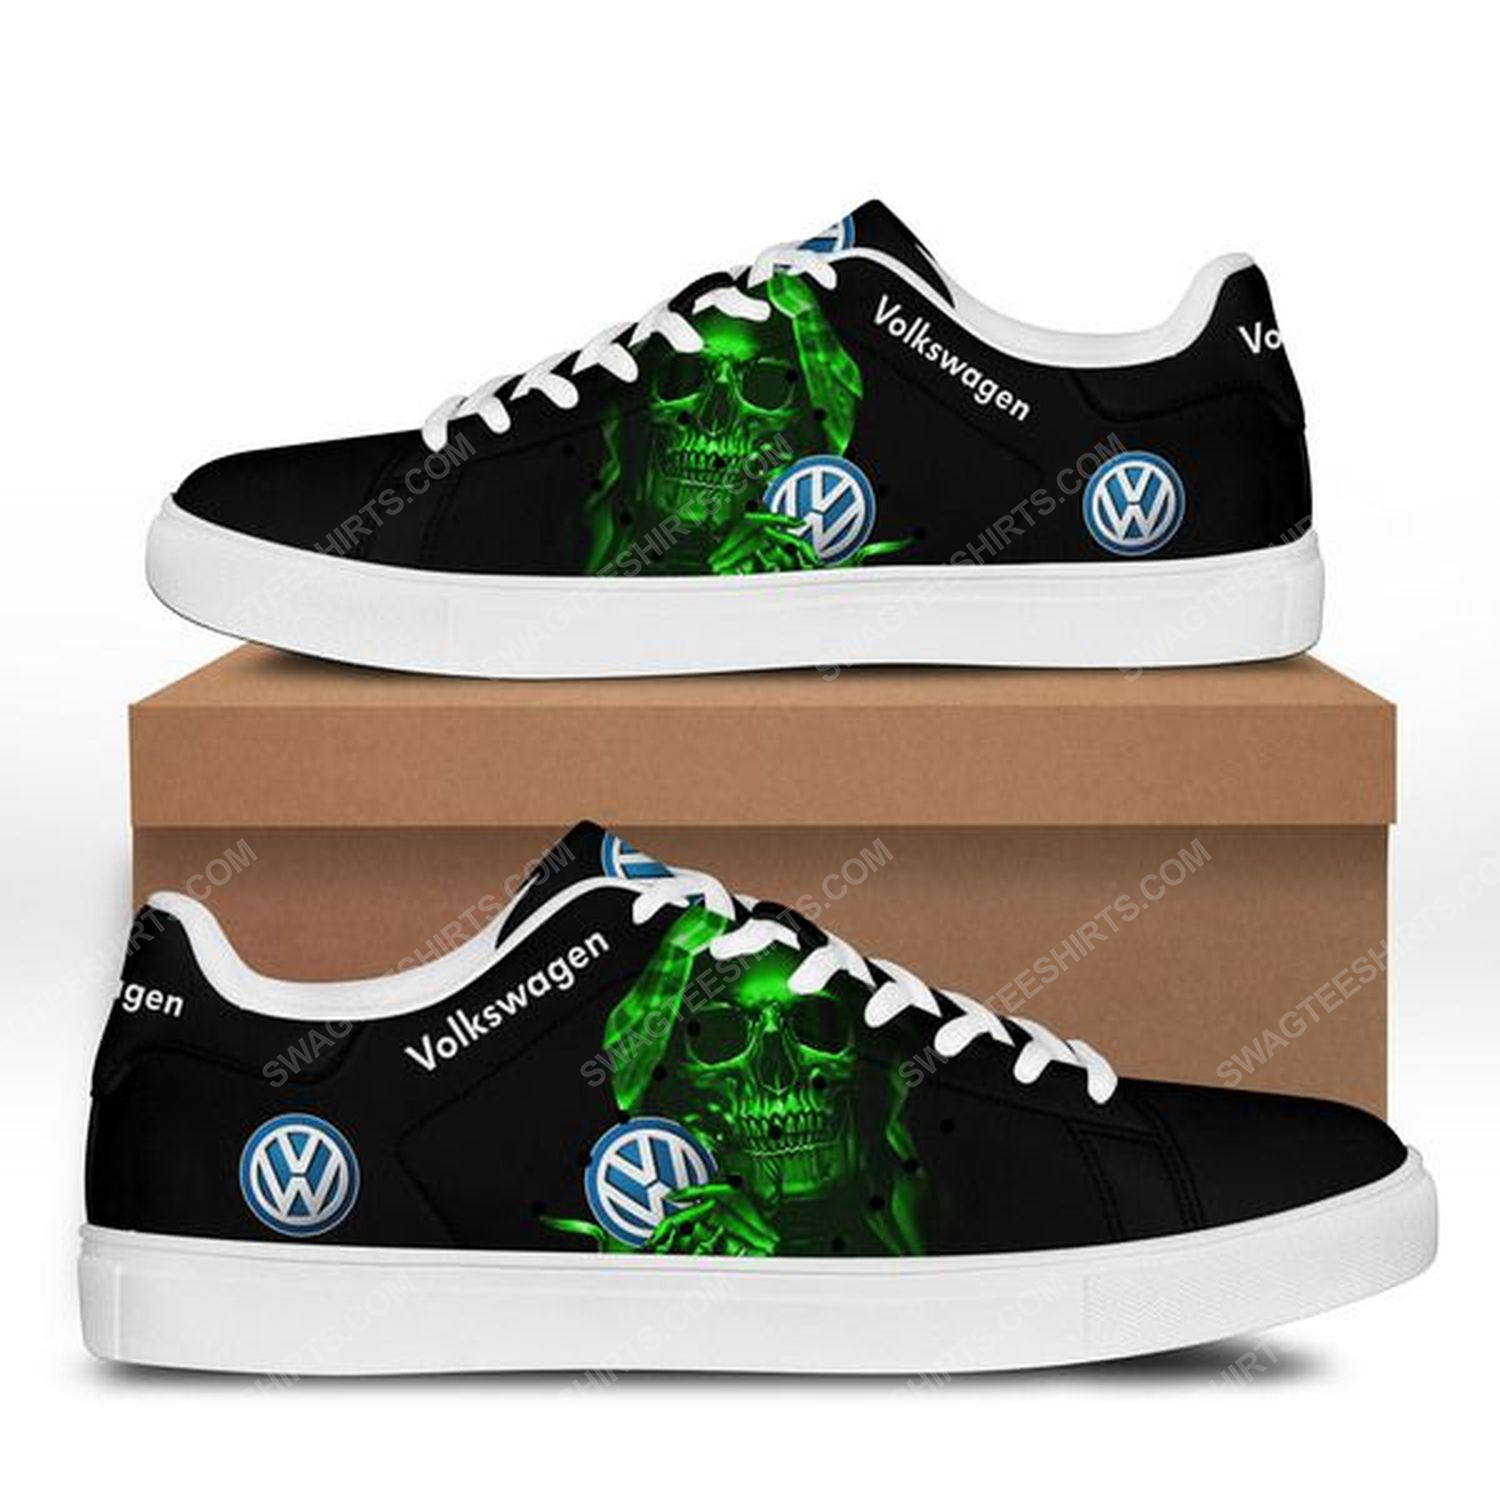 Volkswagen and skull stan smith shoes 3